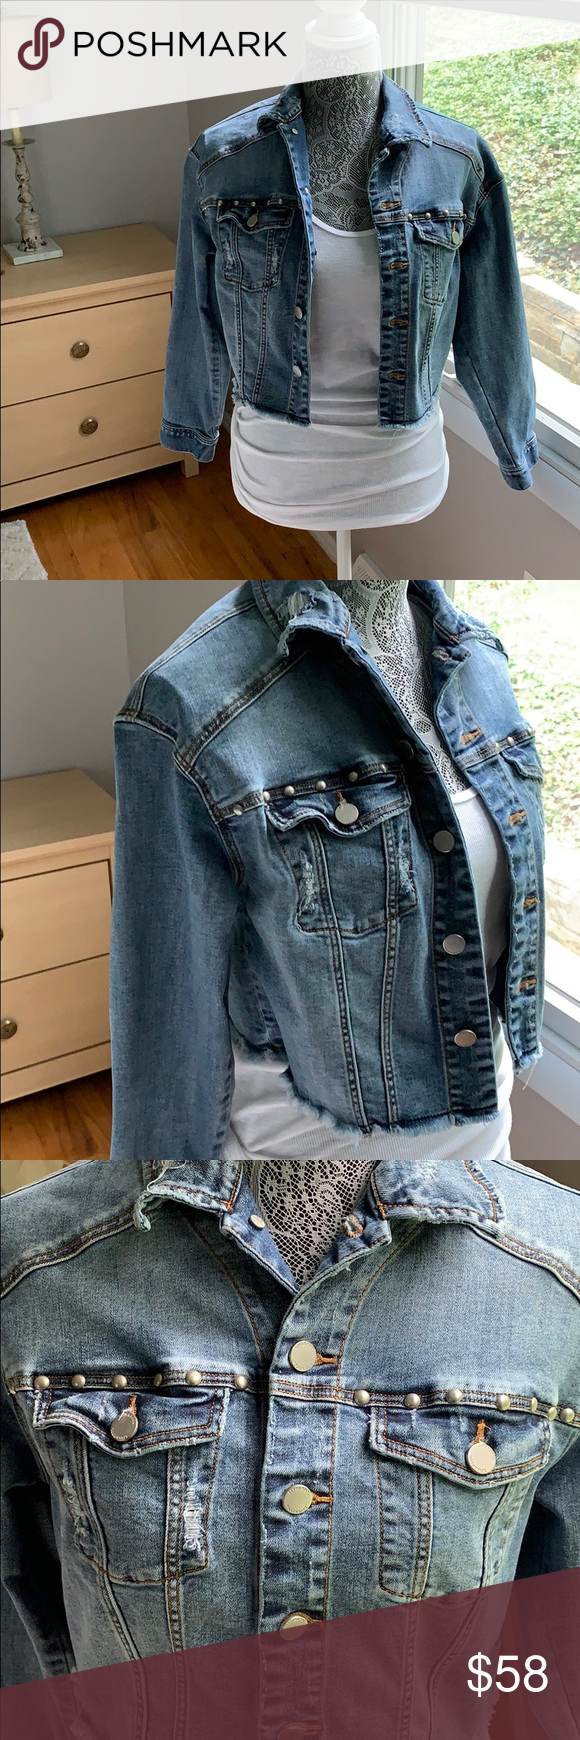 Liverpool Jean Jacket Super Cool Studs Frayed In The Bottom Size Is Xs But Fits Me And I M A Medium Liverpool Jeans Company Liverpool Jeans Jackets Jean Jacket [ 1740 x 580 Pixel ]